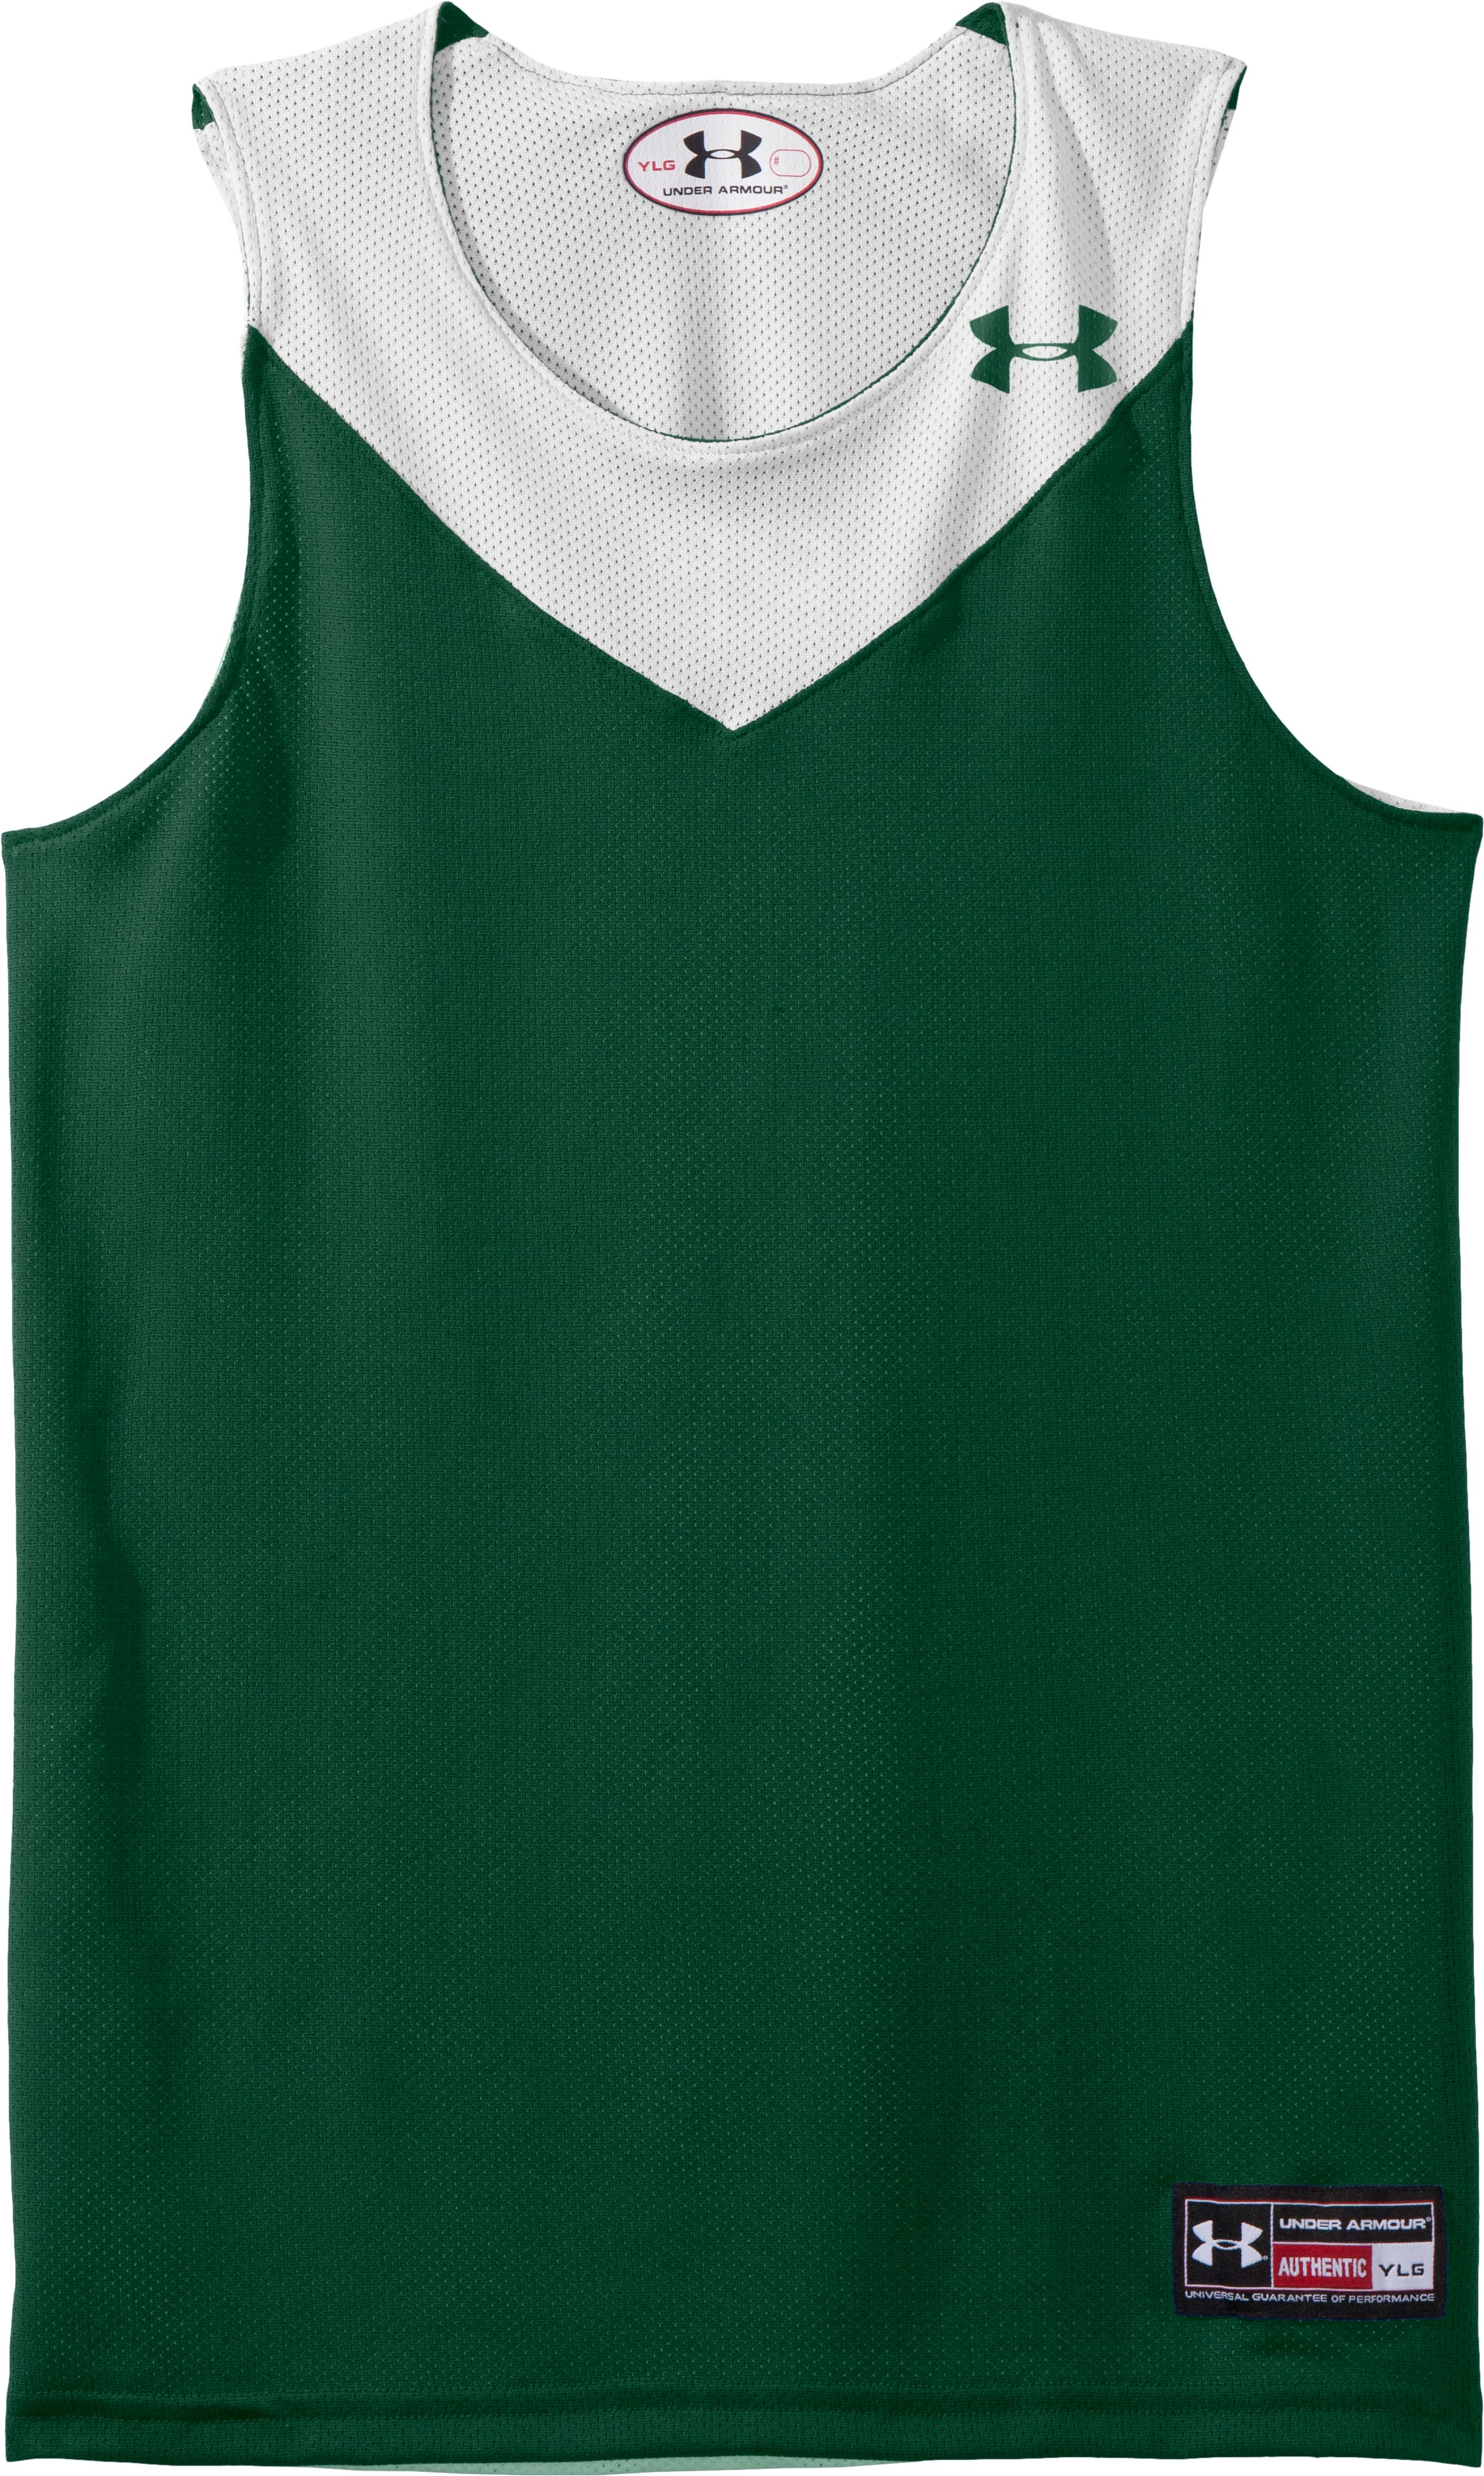 Boys' Repeat Reversible Basketball Jersey, Forest Green, Laydown